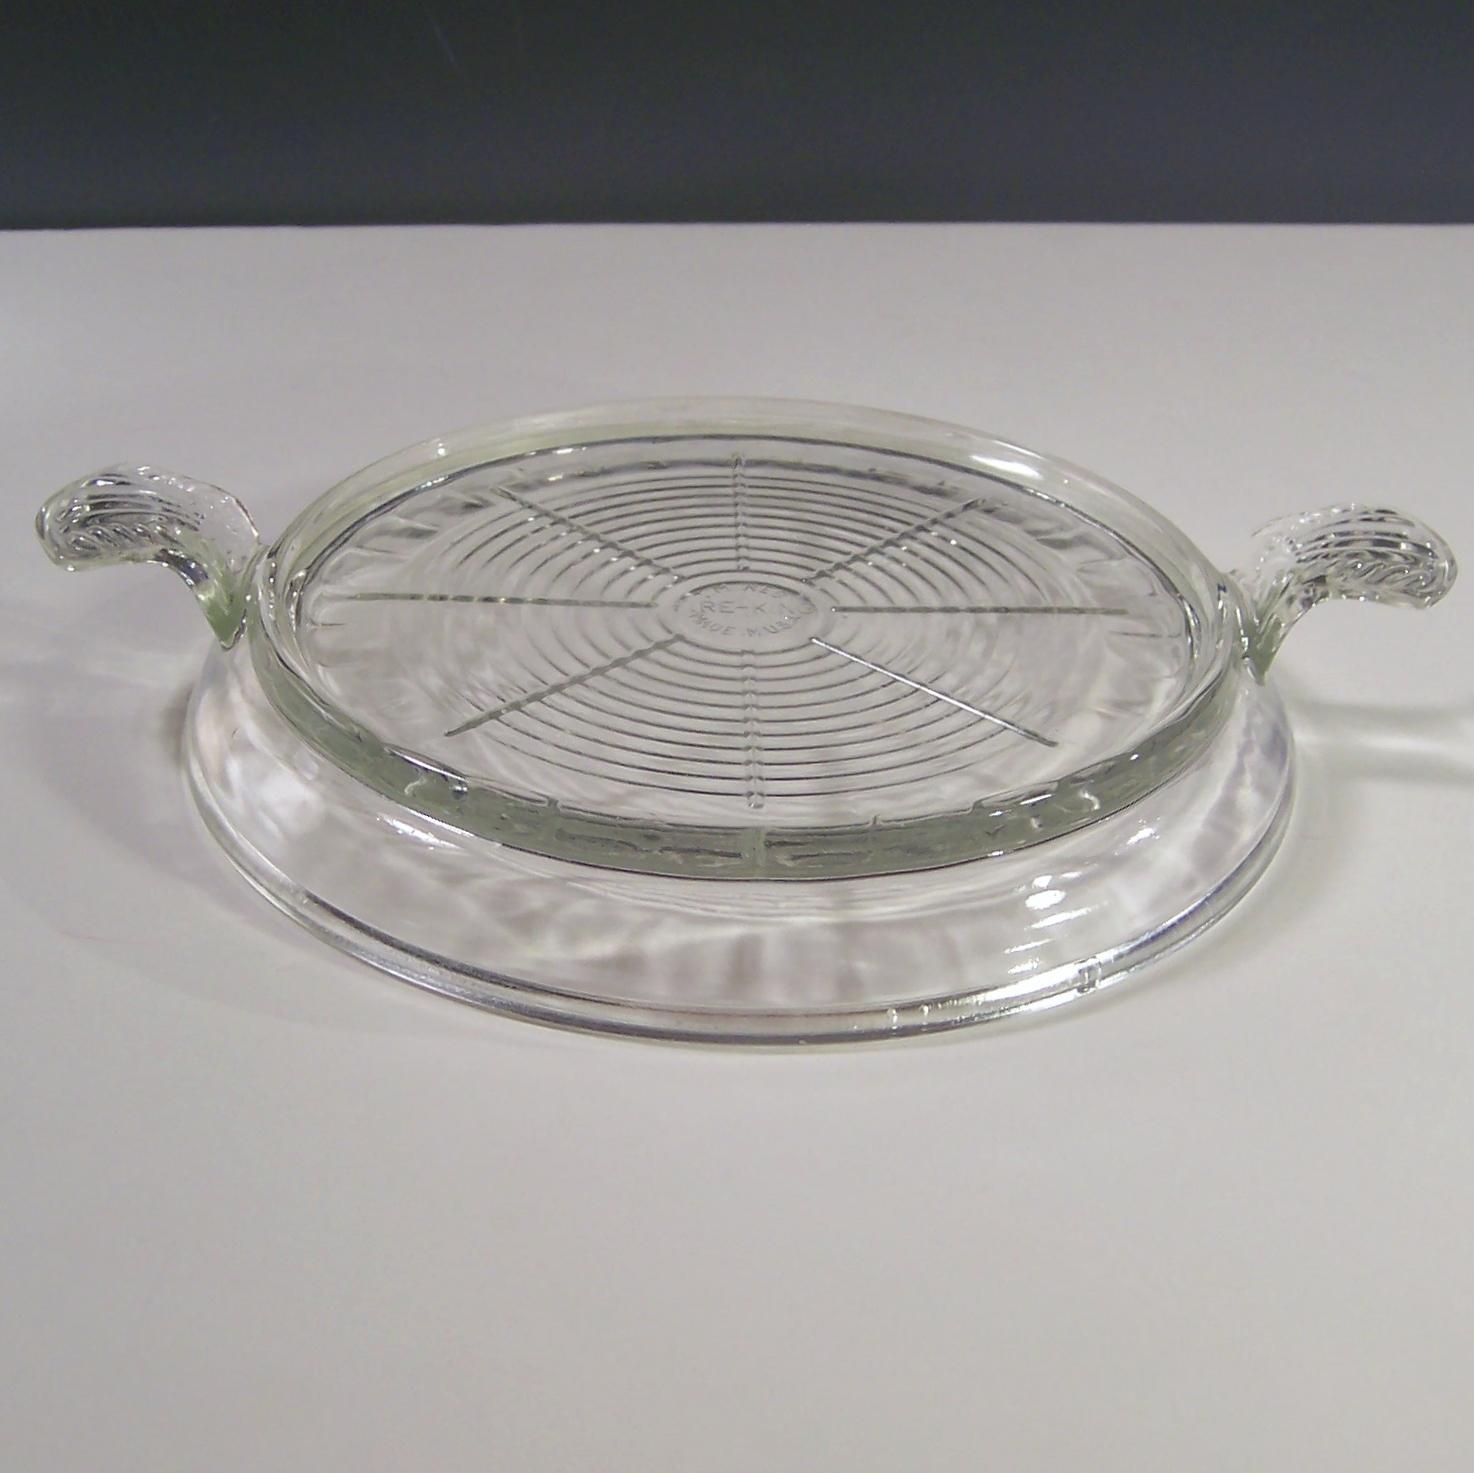 Fire King Clear Cake Pan